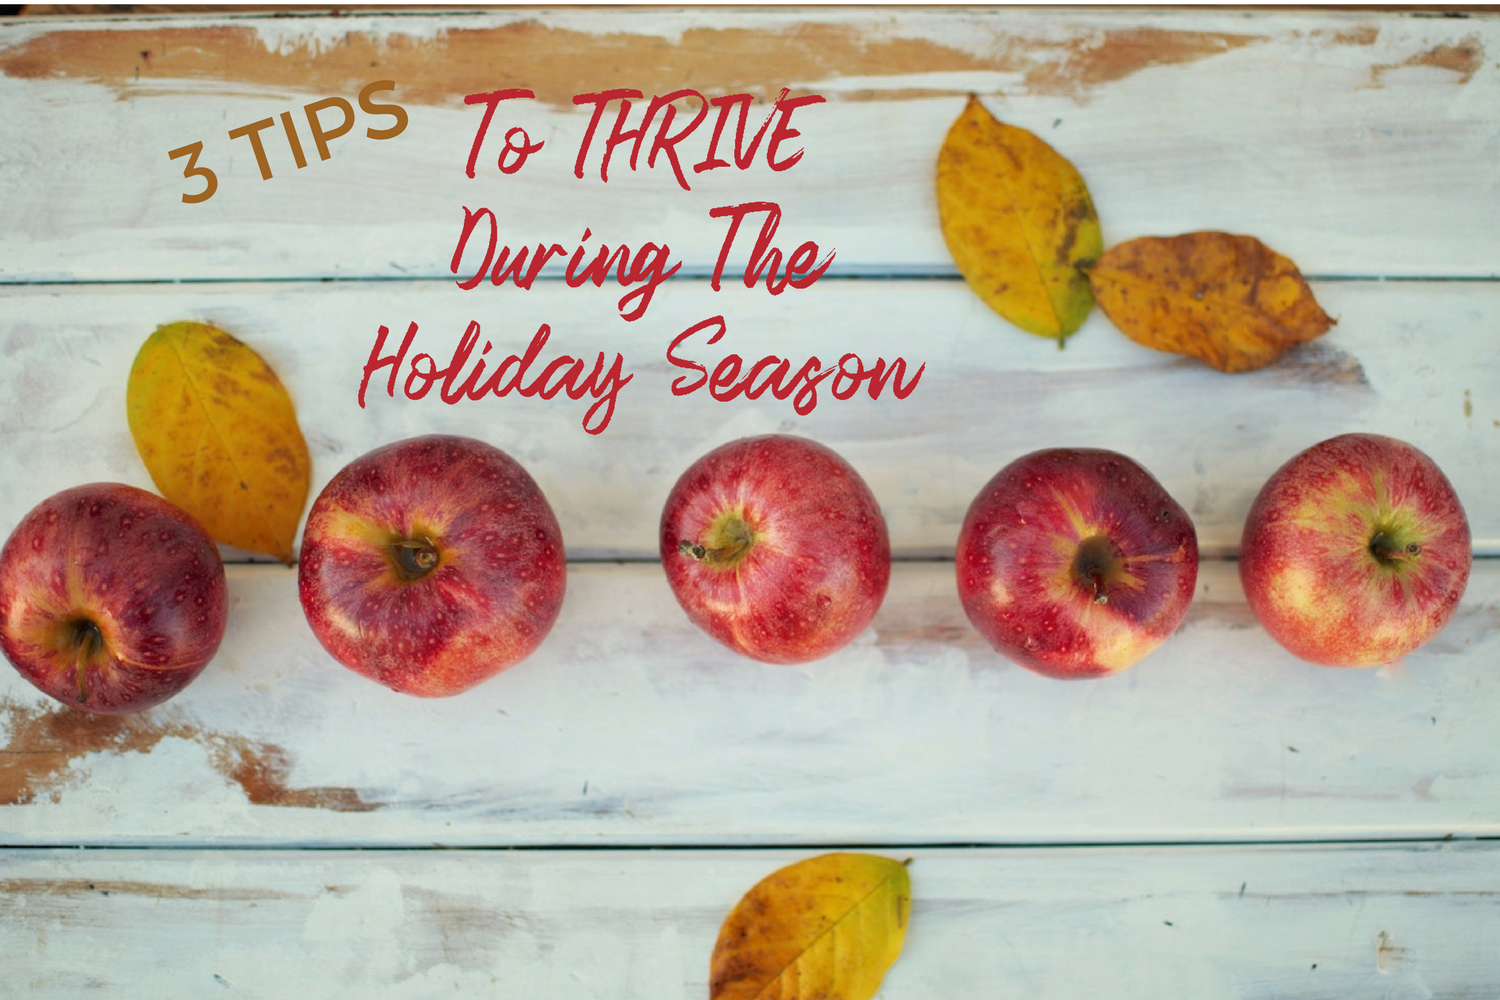 3 TipsTo THRIVE DuringThe Holidays.png